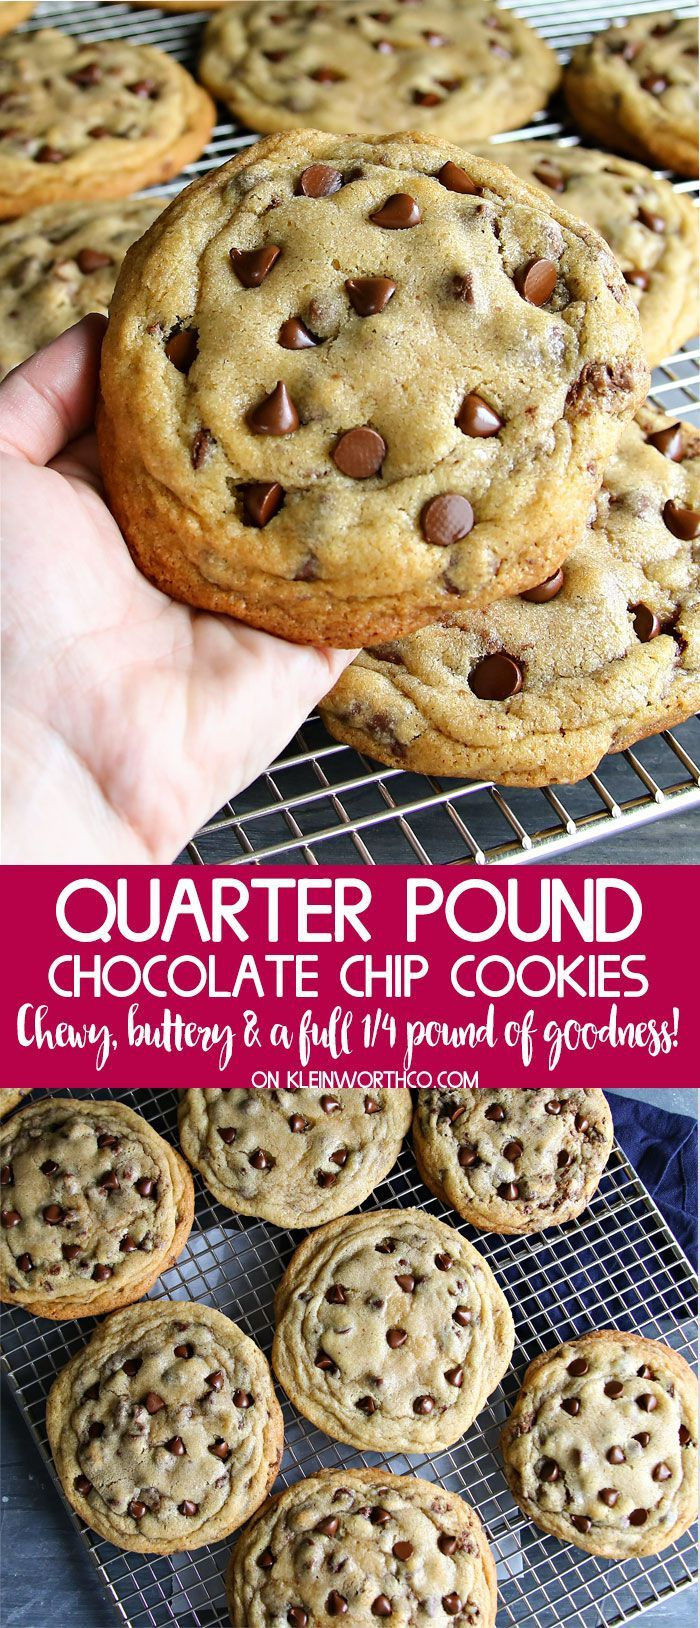 Quarter Pound Chocolate Chip Cookies are an easy to make, soft & chewy cookie recipe to WOW the crowd. Truly 1/4 pound of buttery, chocolaty goodness.